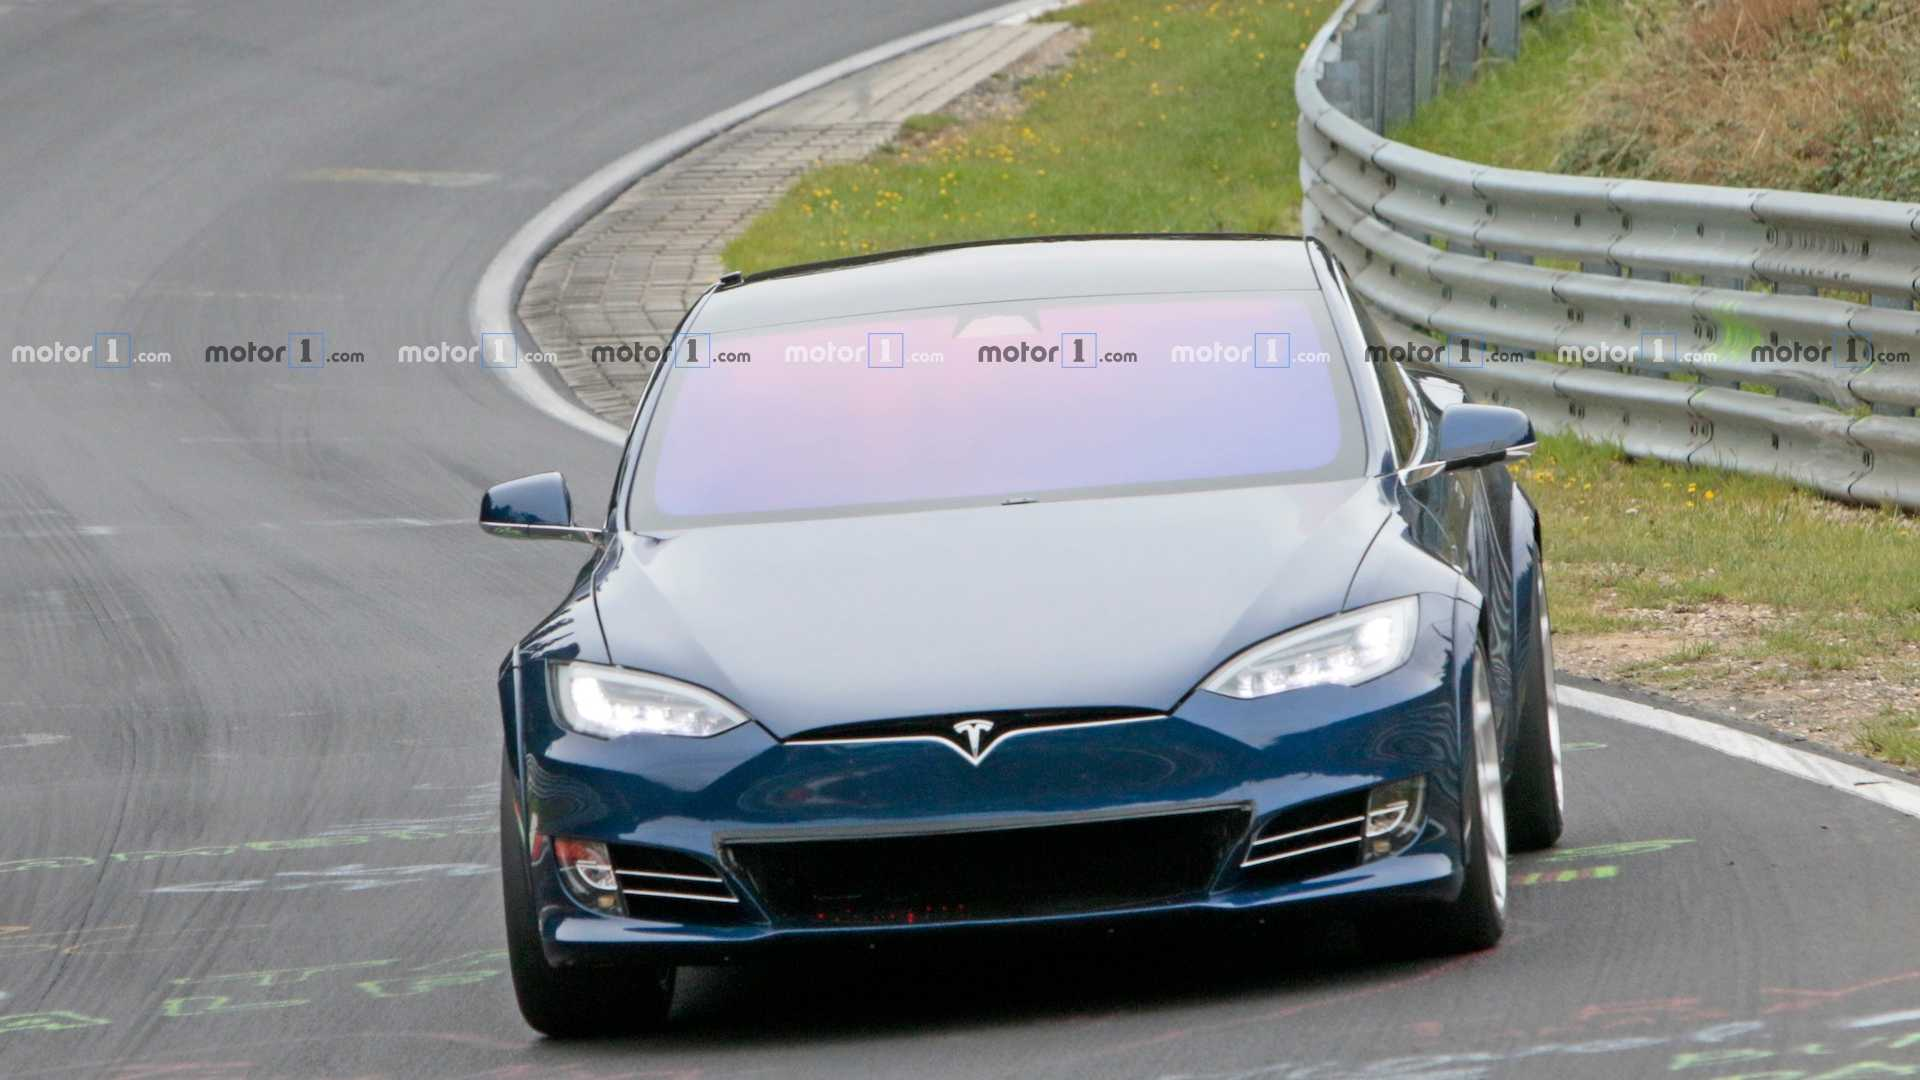 An experimental, engine-swapped Tesla Model S prototype has made a test run at the Nürburgring Circuit in Germany. A media reporter present at the event noted the lap time and discovered that the EV crossed the finish line 19 seconds ahead of its archrival, the Porsche Taycan.